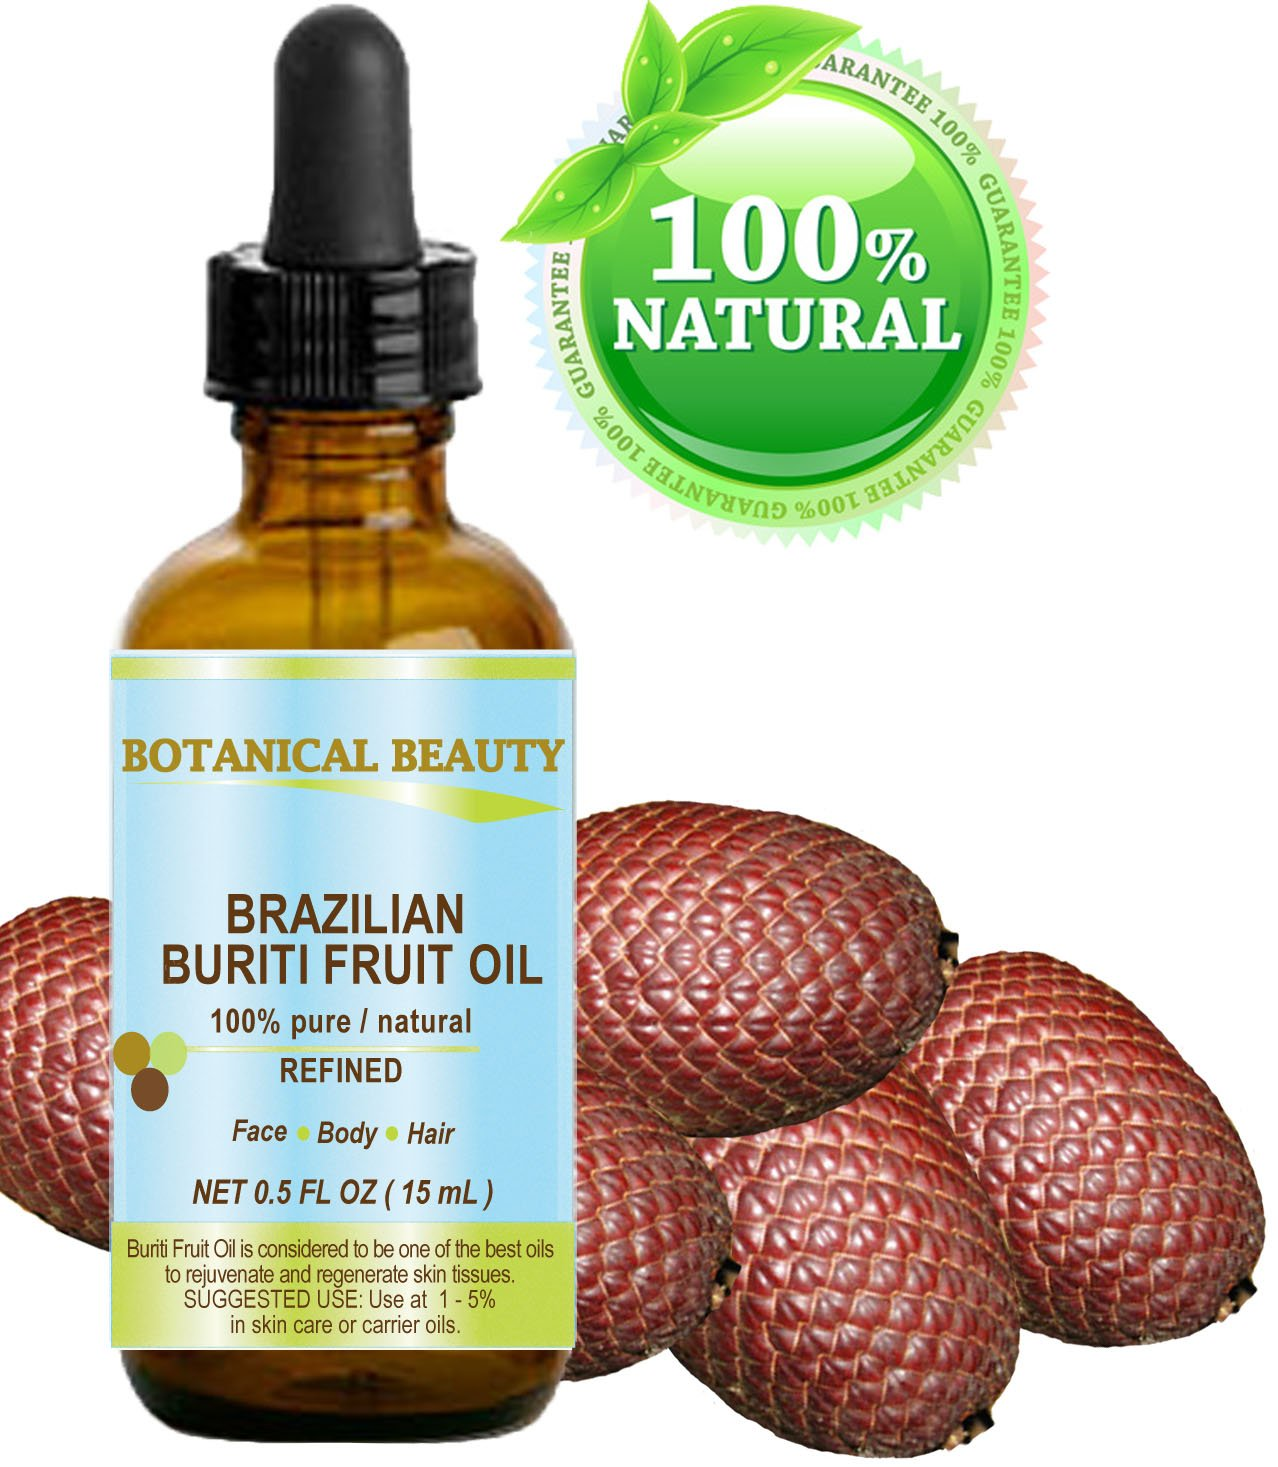 "BURITI FRUIT OIL Brazilian. 100% Pure / Natural / REFINED Undiluted Cold Pressed Carrier Oil . For Face, Body, Hair, Lip and Nail Care. 0.5 fl.oz - 15ml. ""One the richest natural source of vitamin A, E and C"" From Amazon Rainforest. Botanical Beauty"